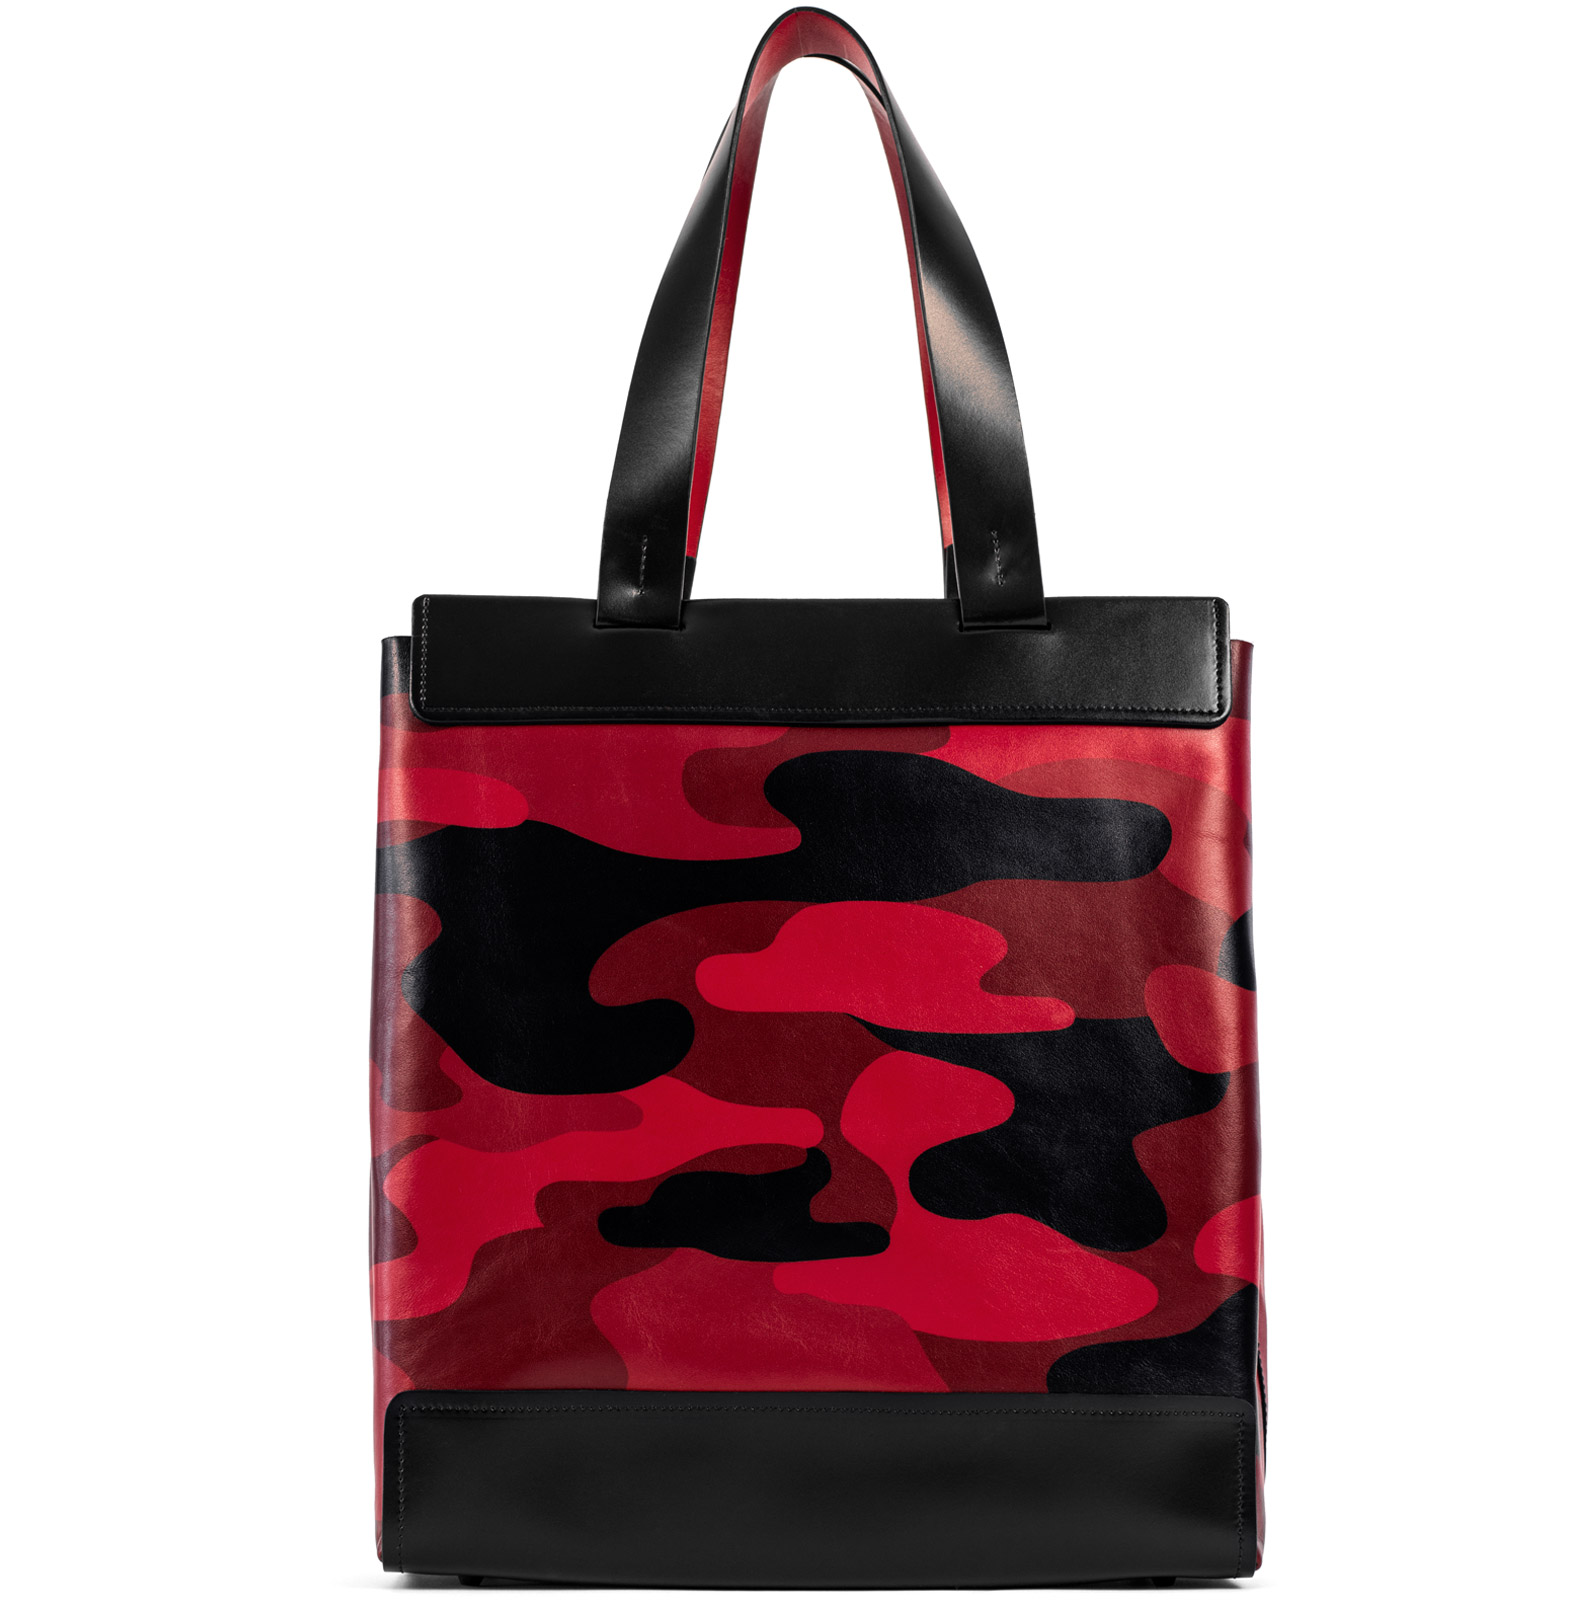 UNIVERSAL TOTE -